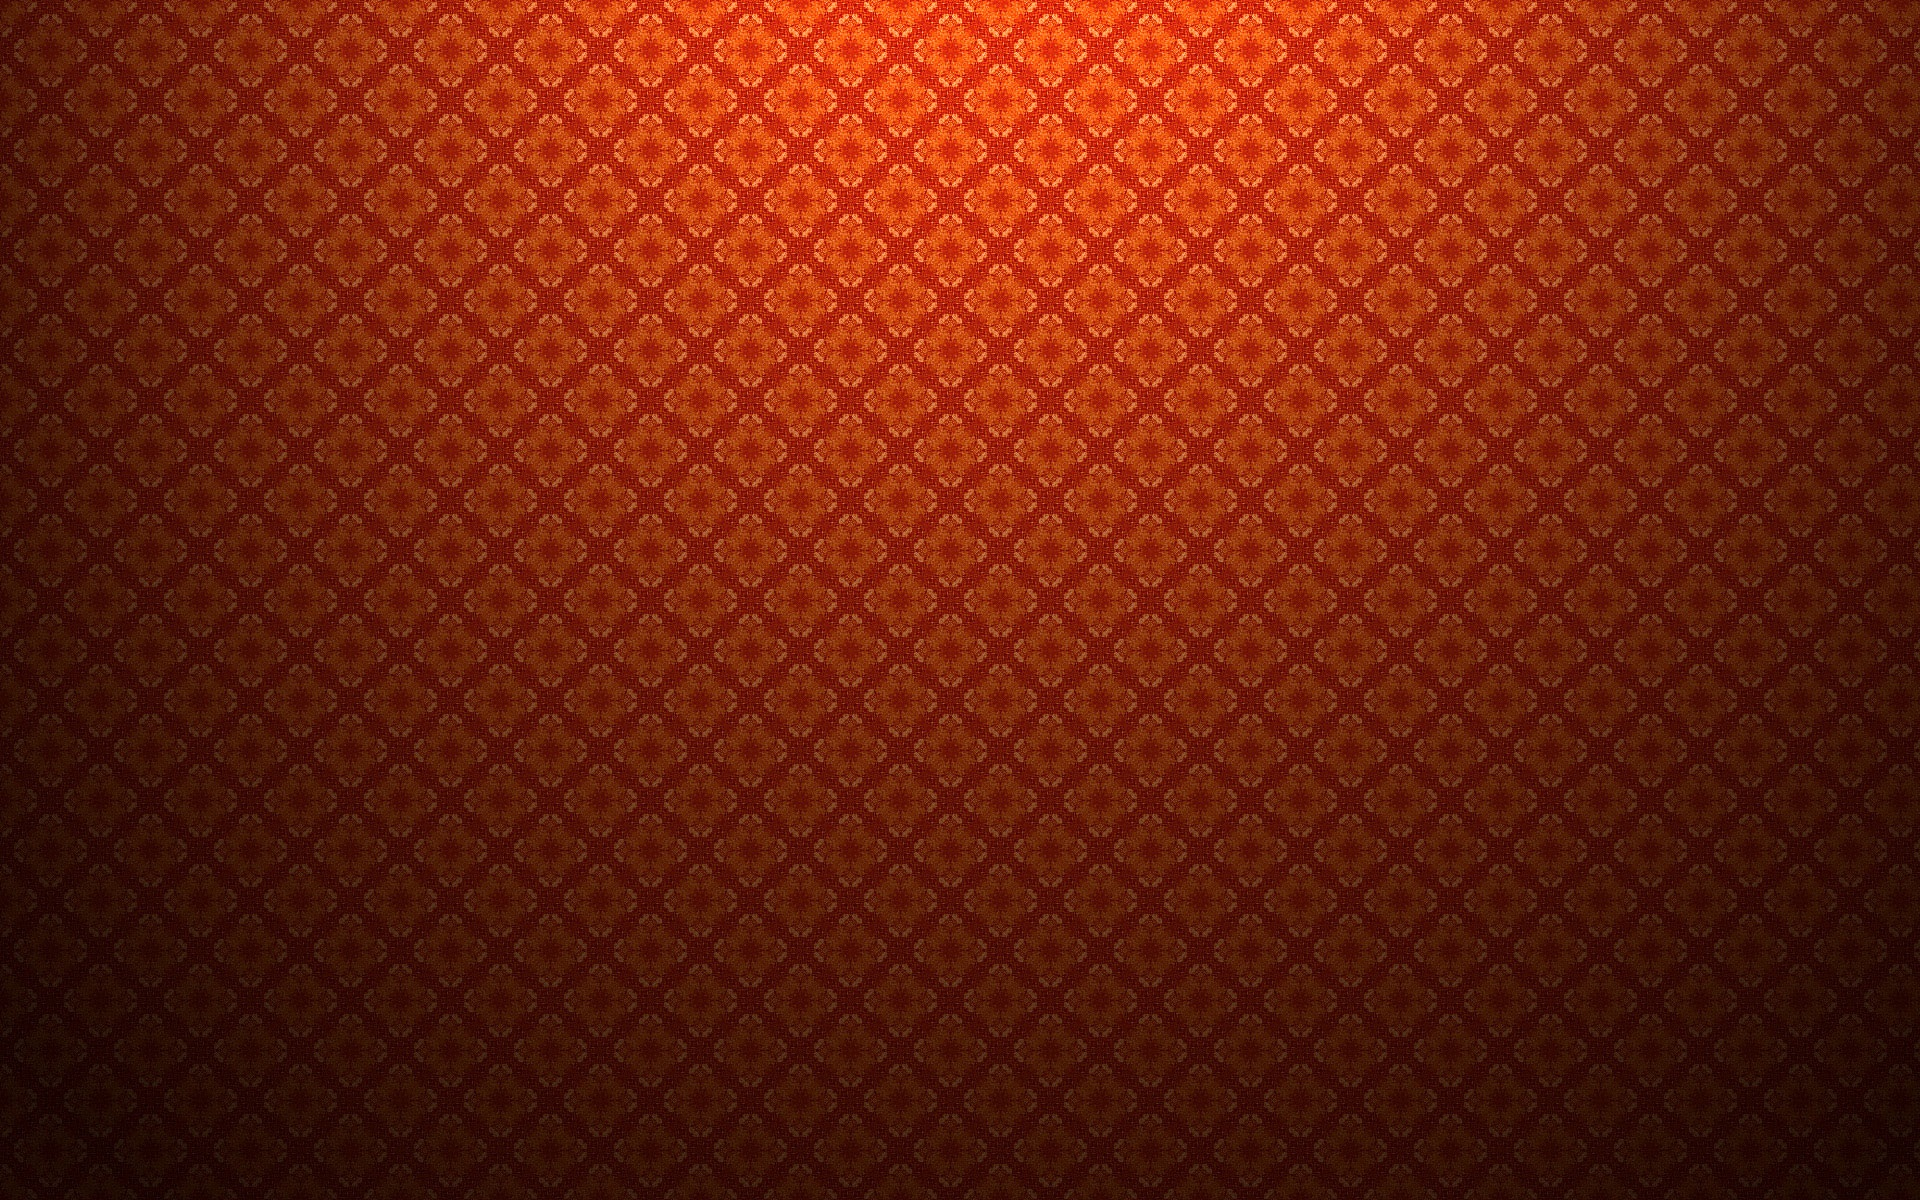 Download hd red wallpaper for desktop and mobile for 3d brown wallpaper